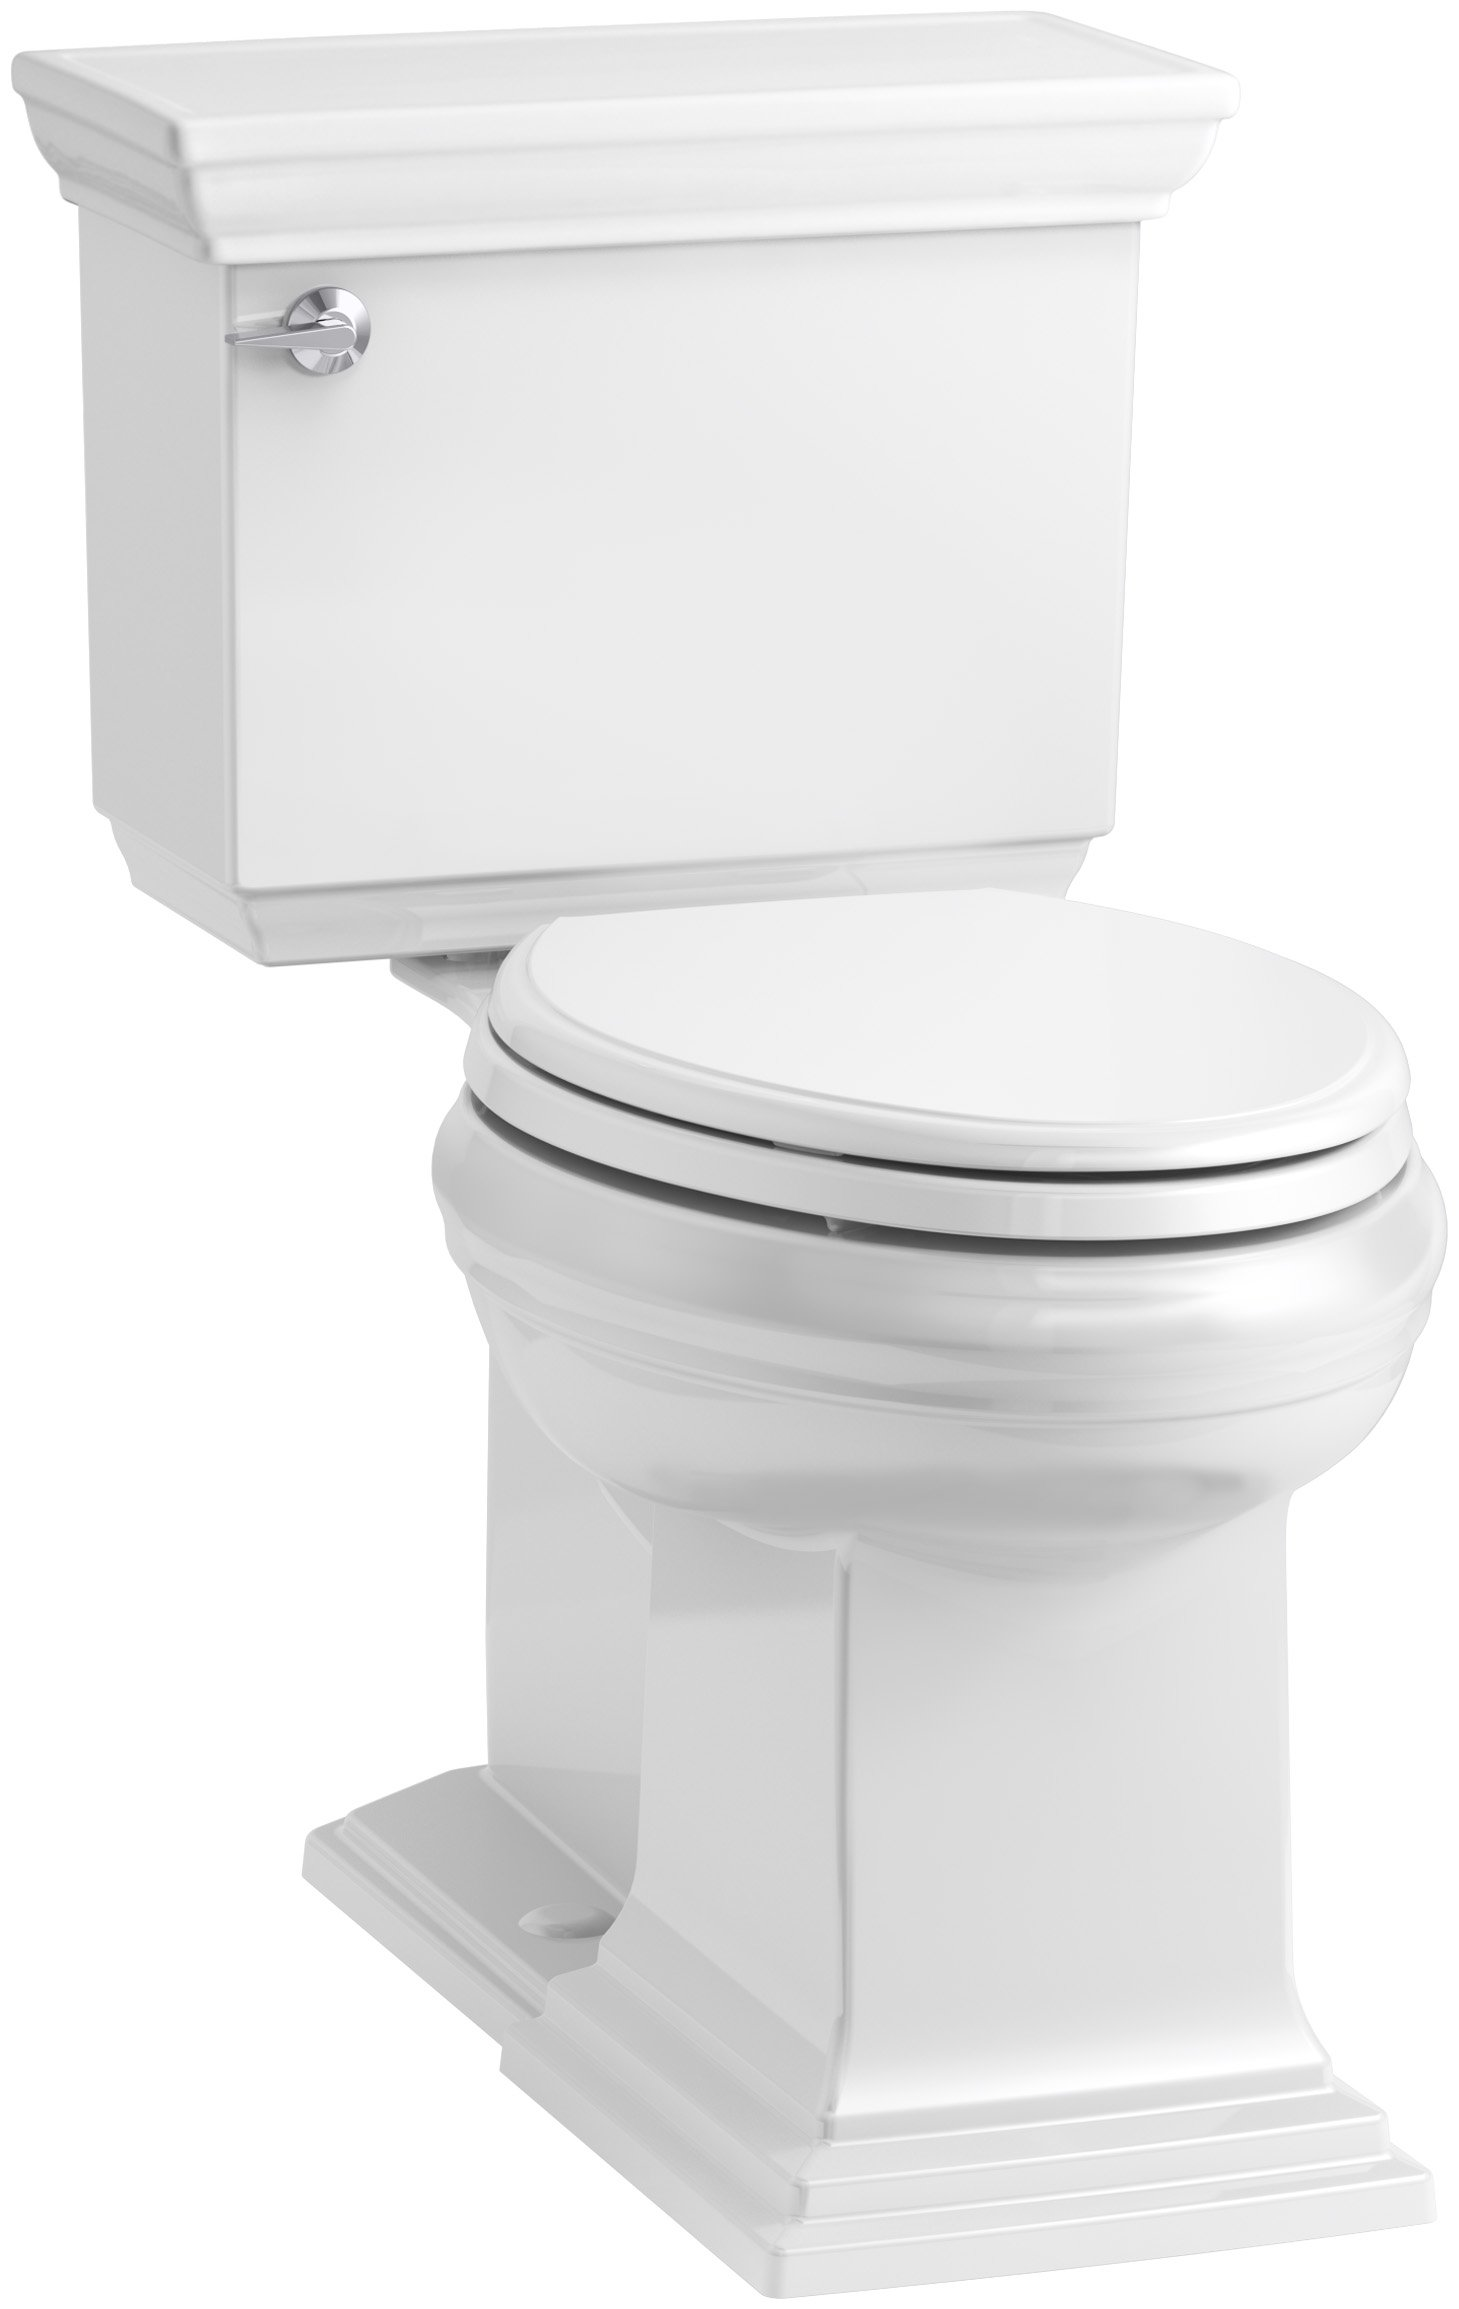 KOHLER K-6669-0 Memoirs Stately Comfort Height Elongated 1.28 GPF Toilet with Aqua Piston Flush Technology, Concealed Trap Way and Left-Hand Trip Lever (2 Piece), White by Kohler